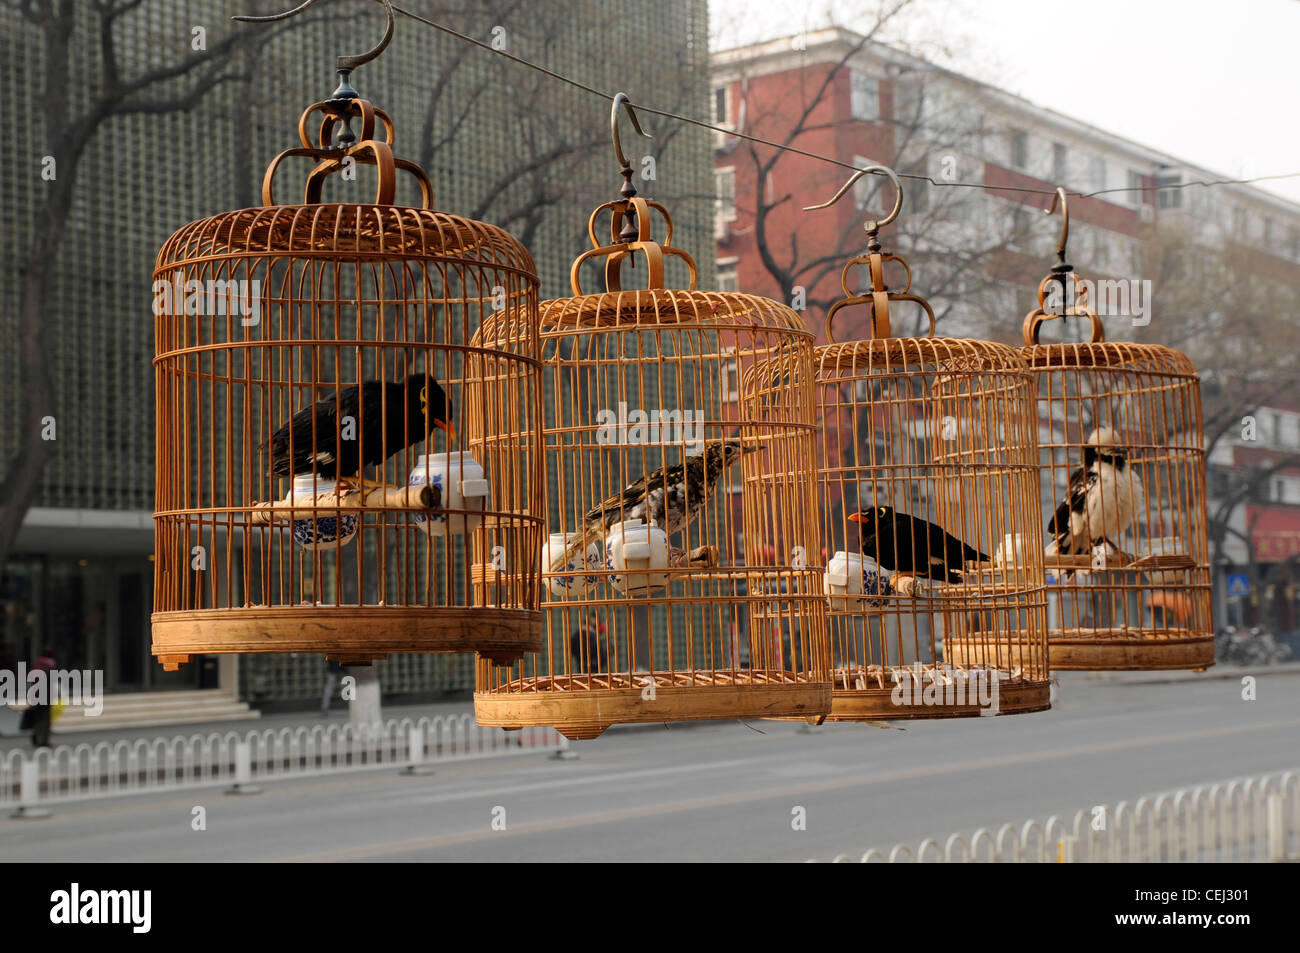 Song birds in bamboo cages, Beijing, China - Stock Image